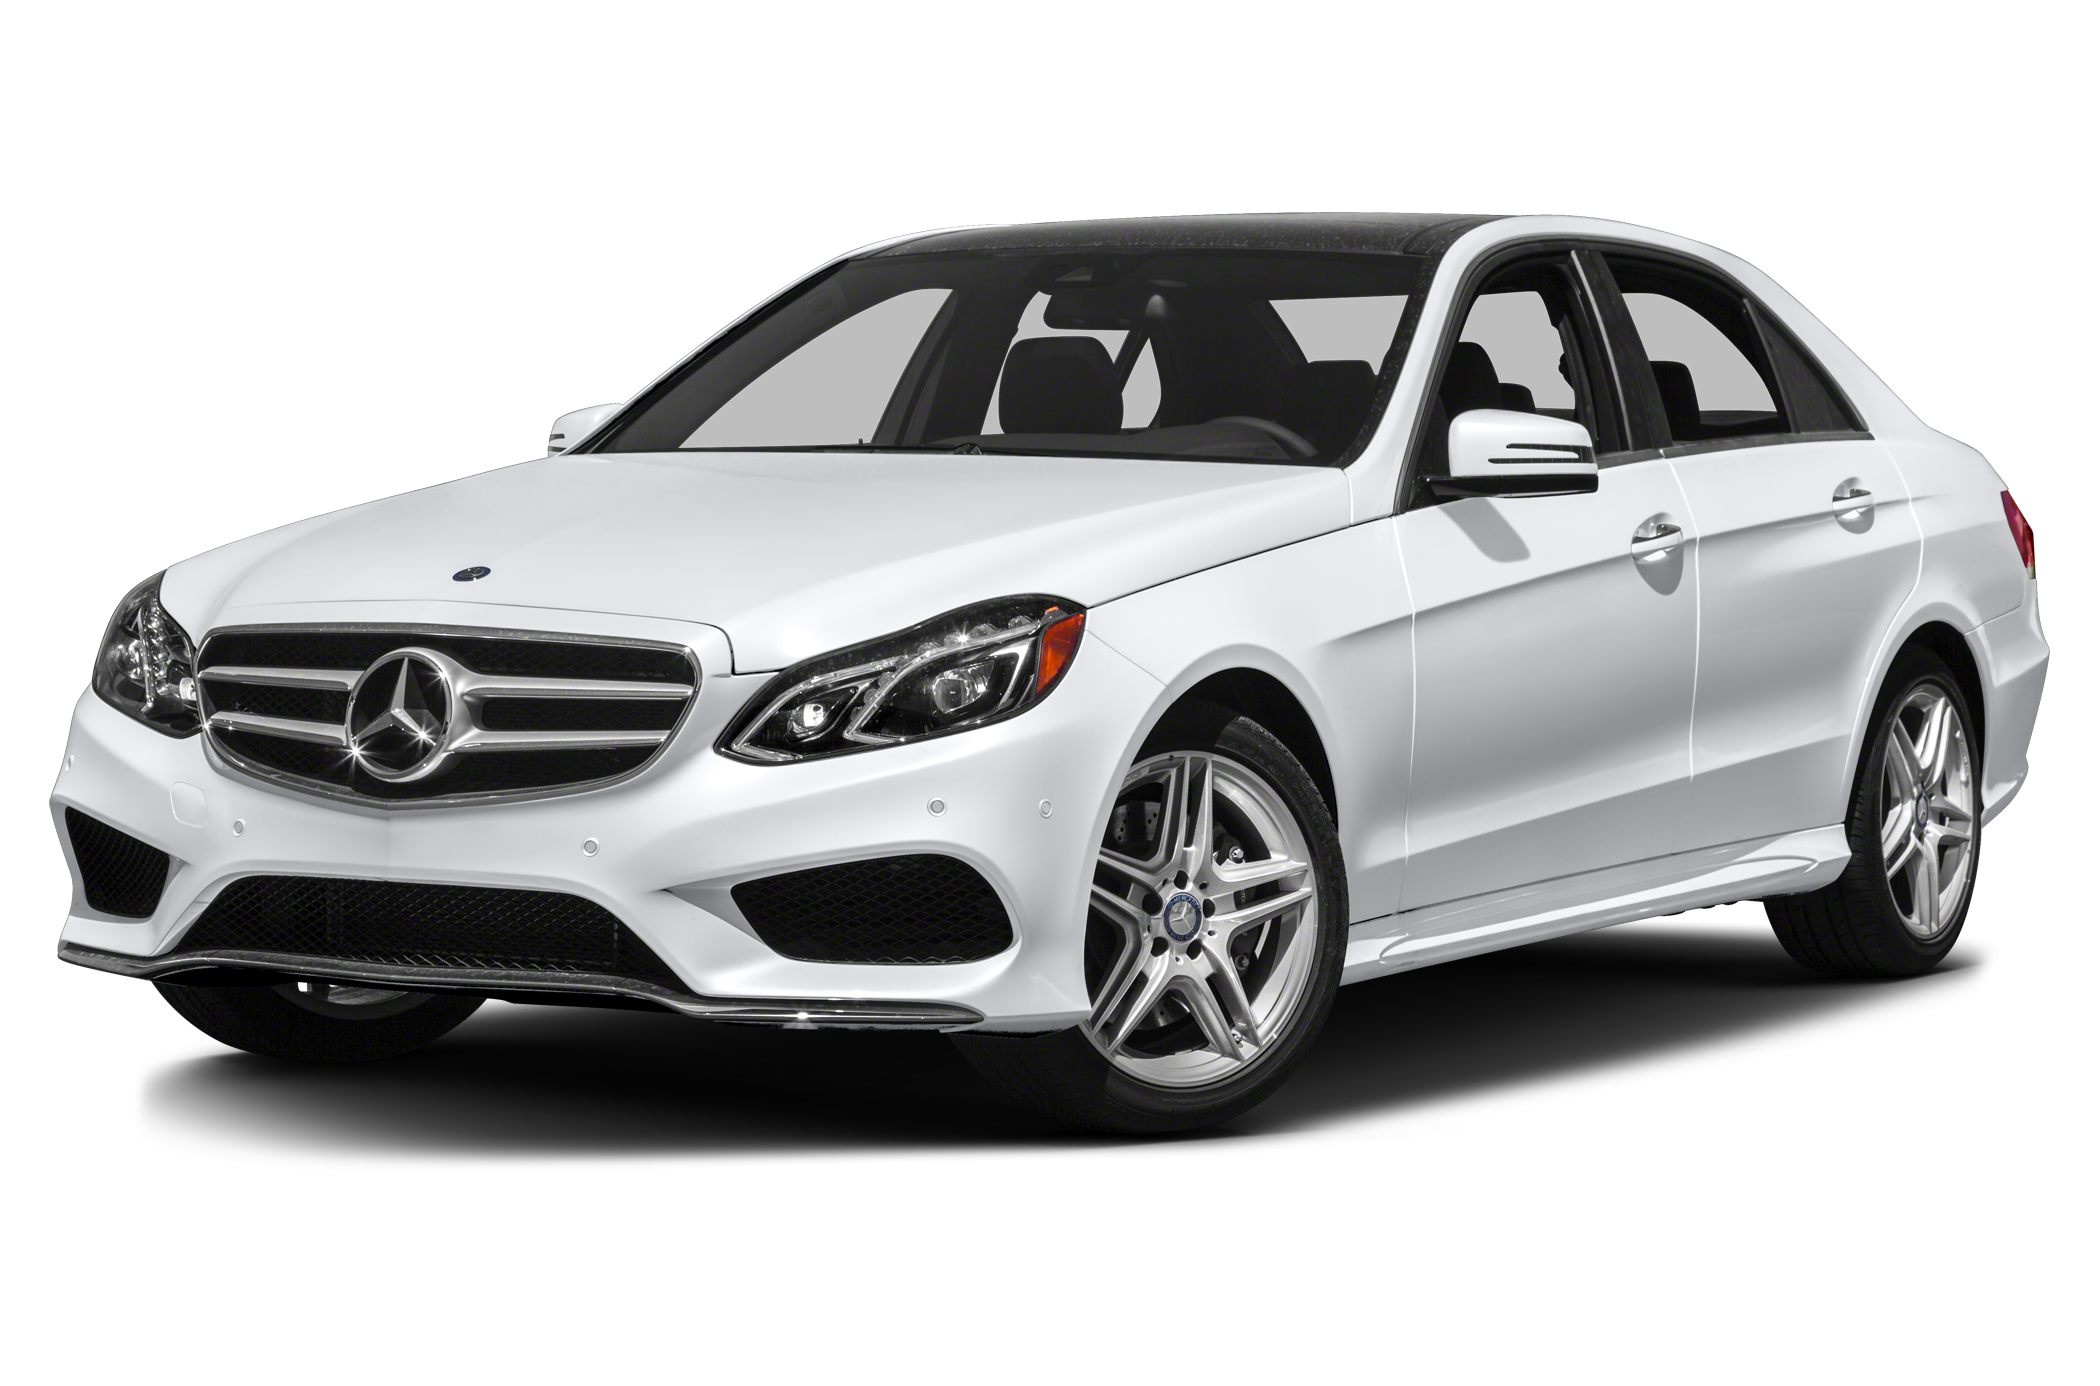 2014 MERCEDES E-Class E 350 4MATIC Recent Arrival MERCEDES BENZ CERTIFIED  CPO ONE OWNER CLEAN